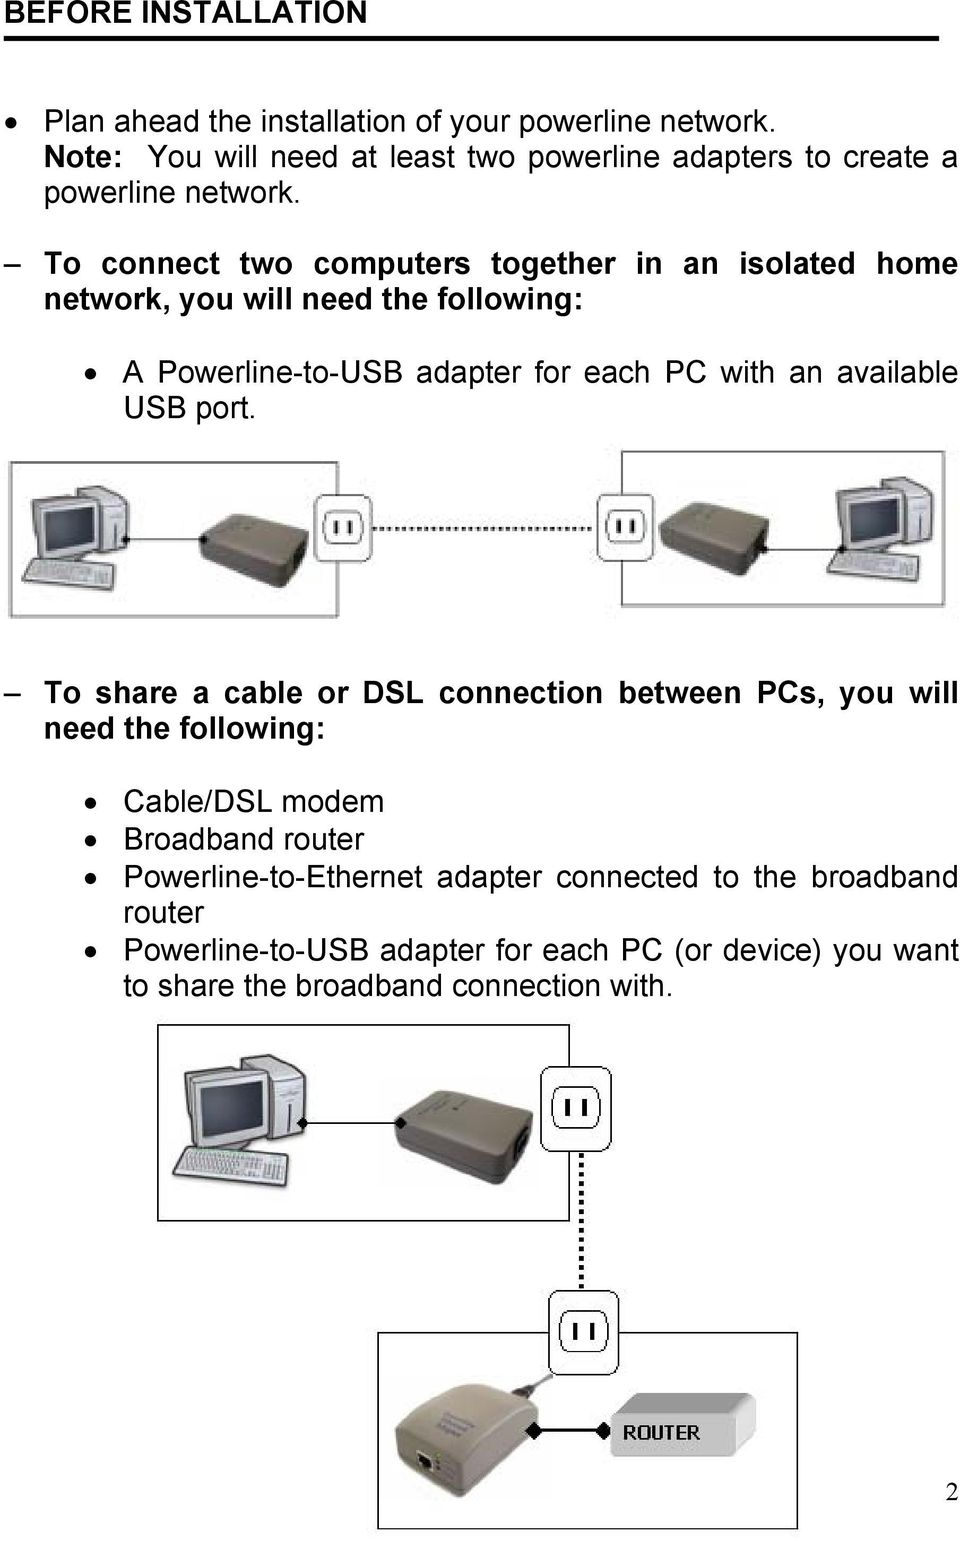 To connect two computers together in an isolated home network, you will need the following: A Powerline-to-USB adapter for each PC with an